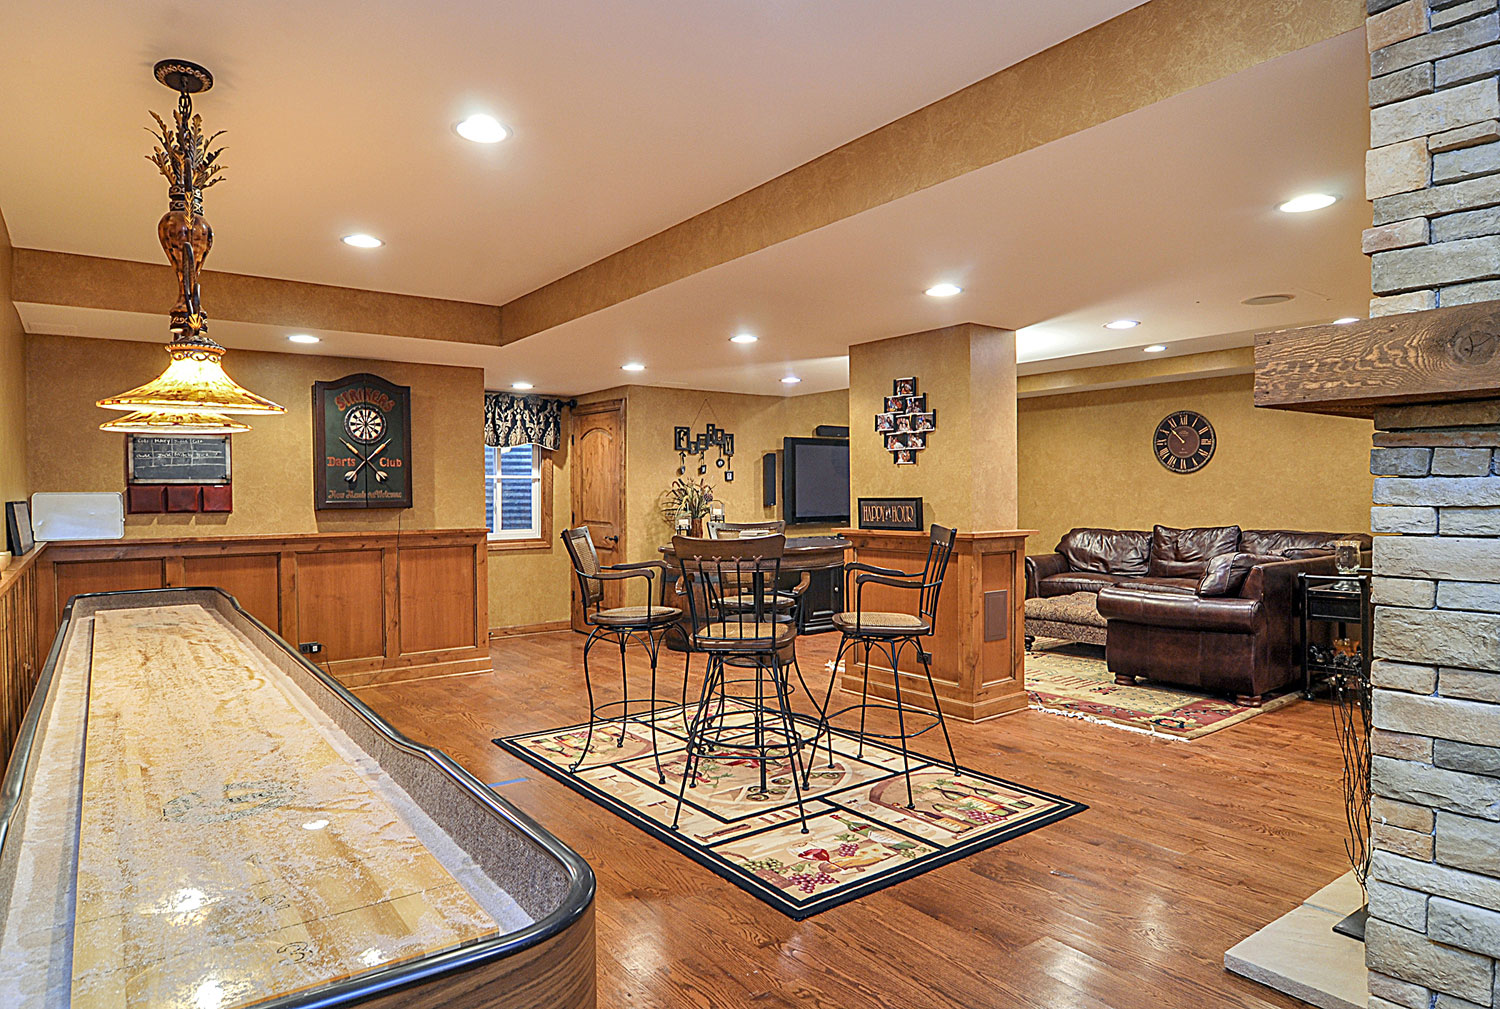 Michael Amp Nancy S Basement Remodel Pictures Home